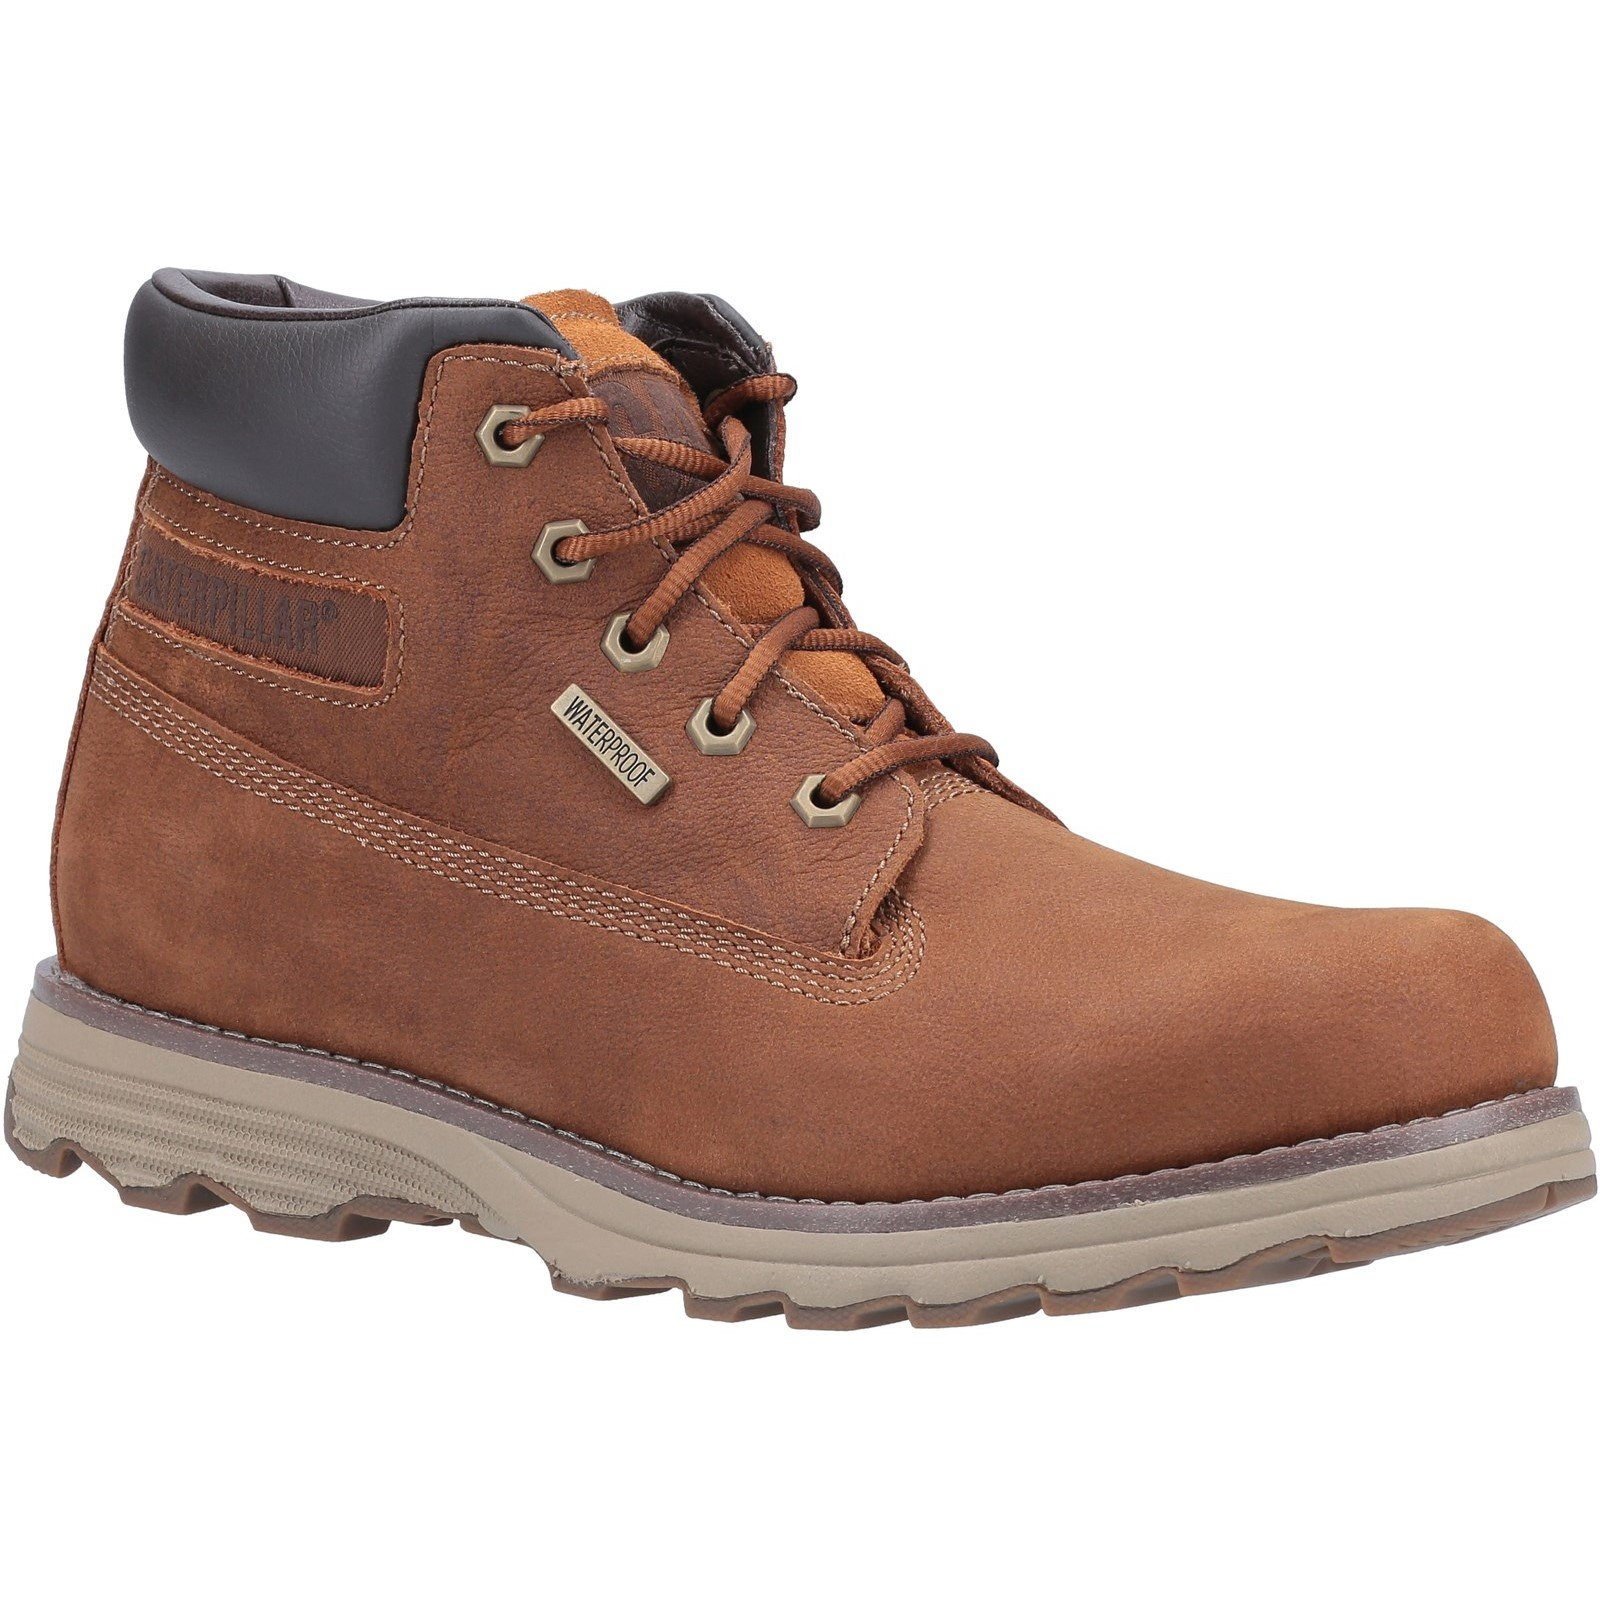 CAT Lifestyle Men's Founder WP TX Lace Up Boot 31487-53851 - Danish Brown 10